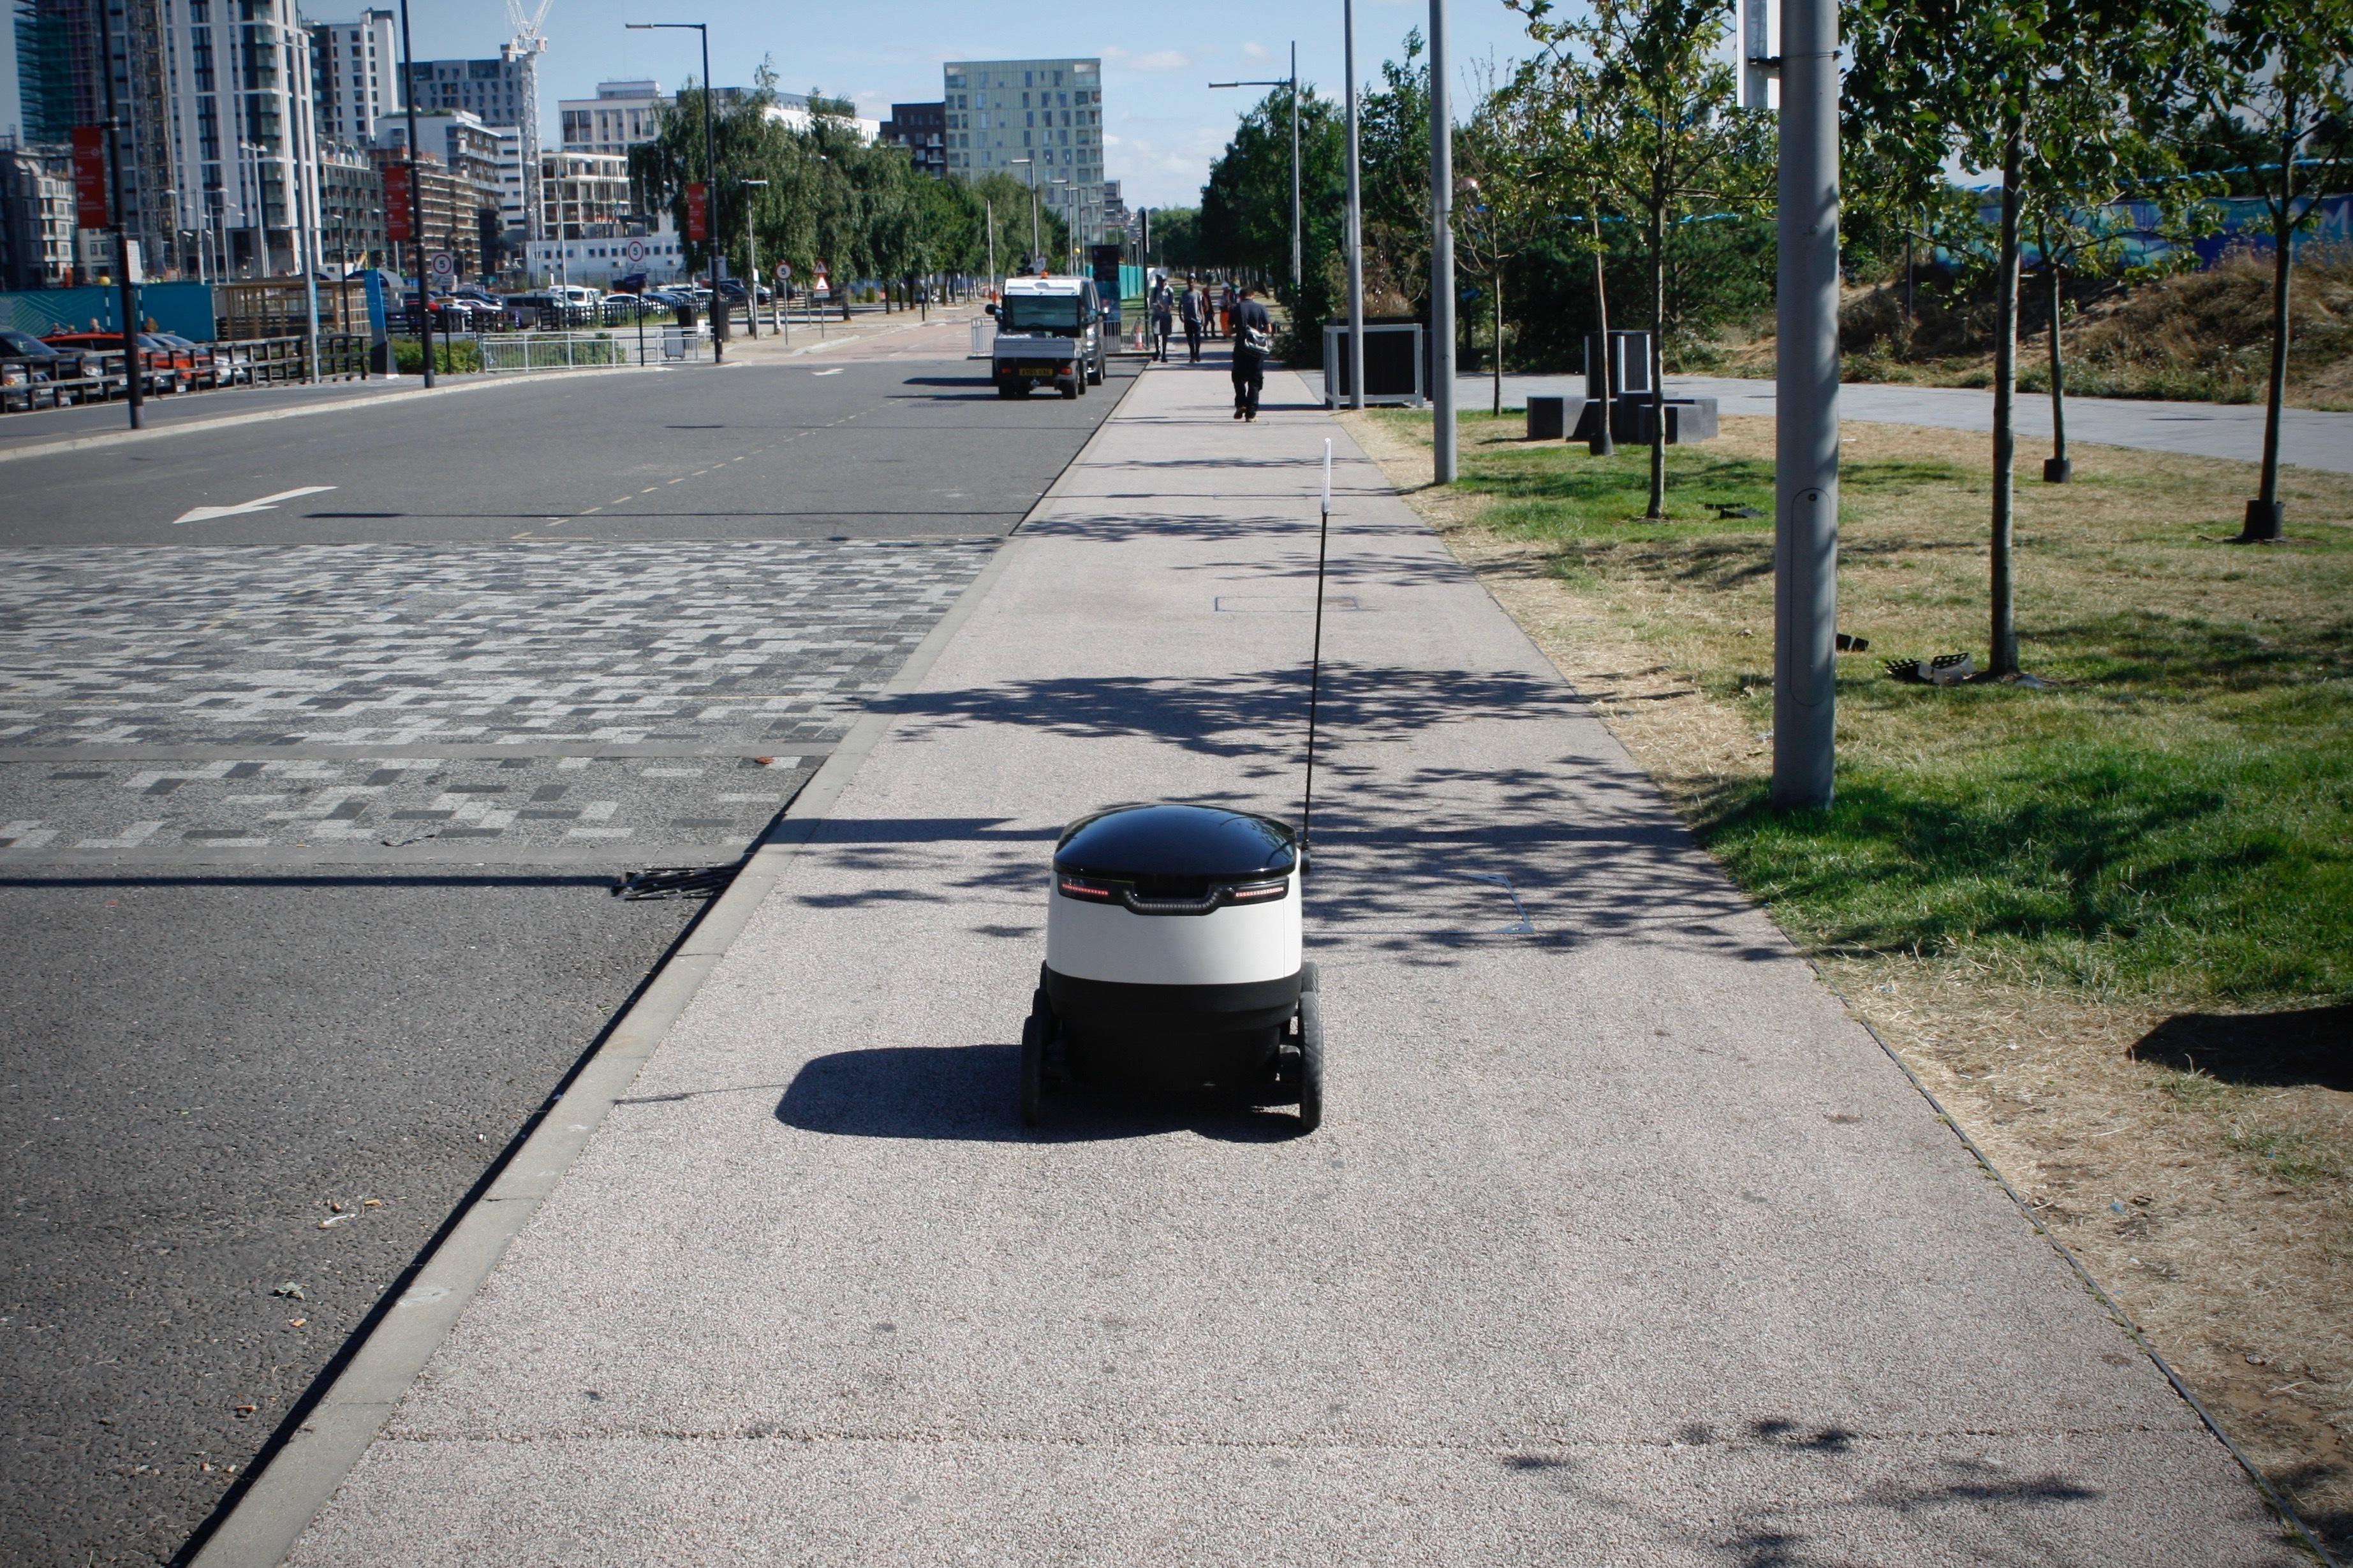 Starship's delivery robot is one of the other ways companies are seeking to change home delivery.